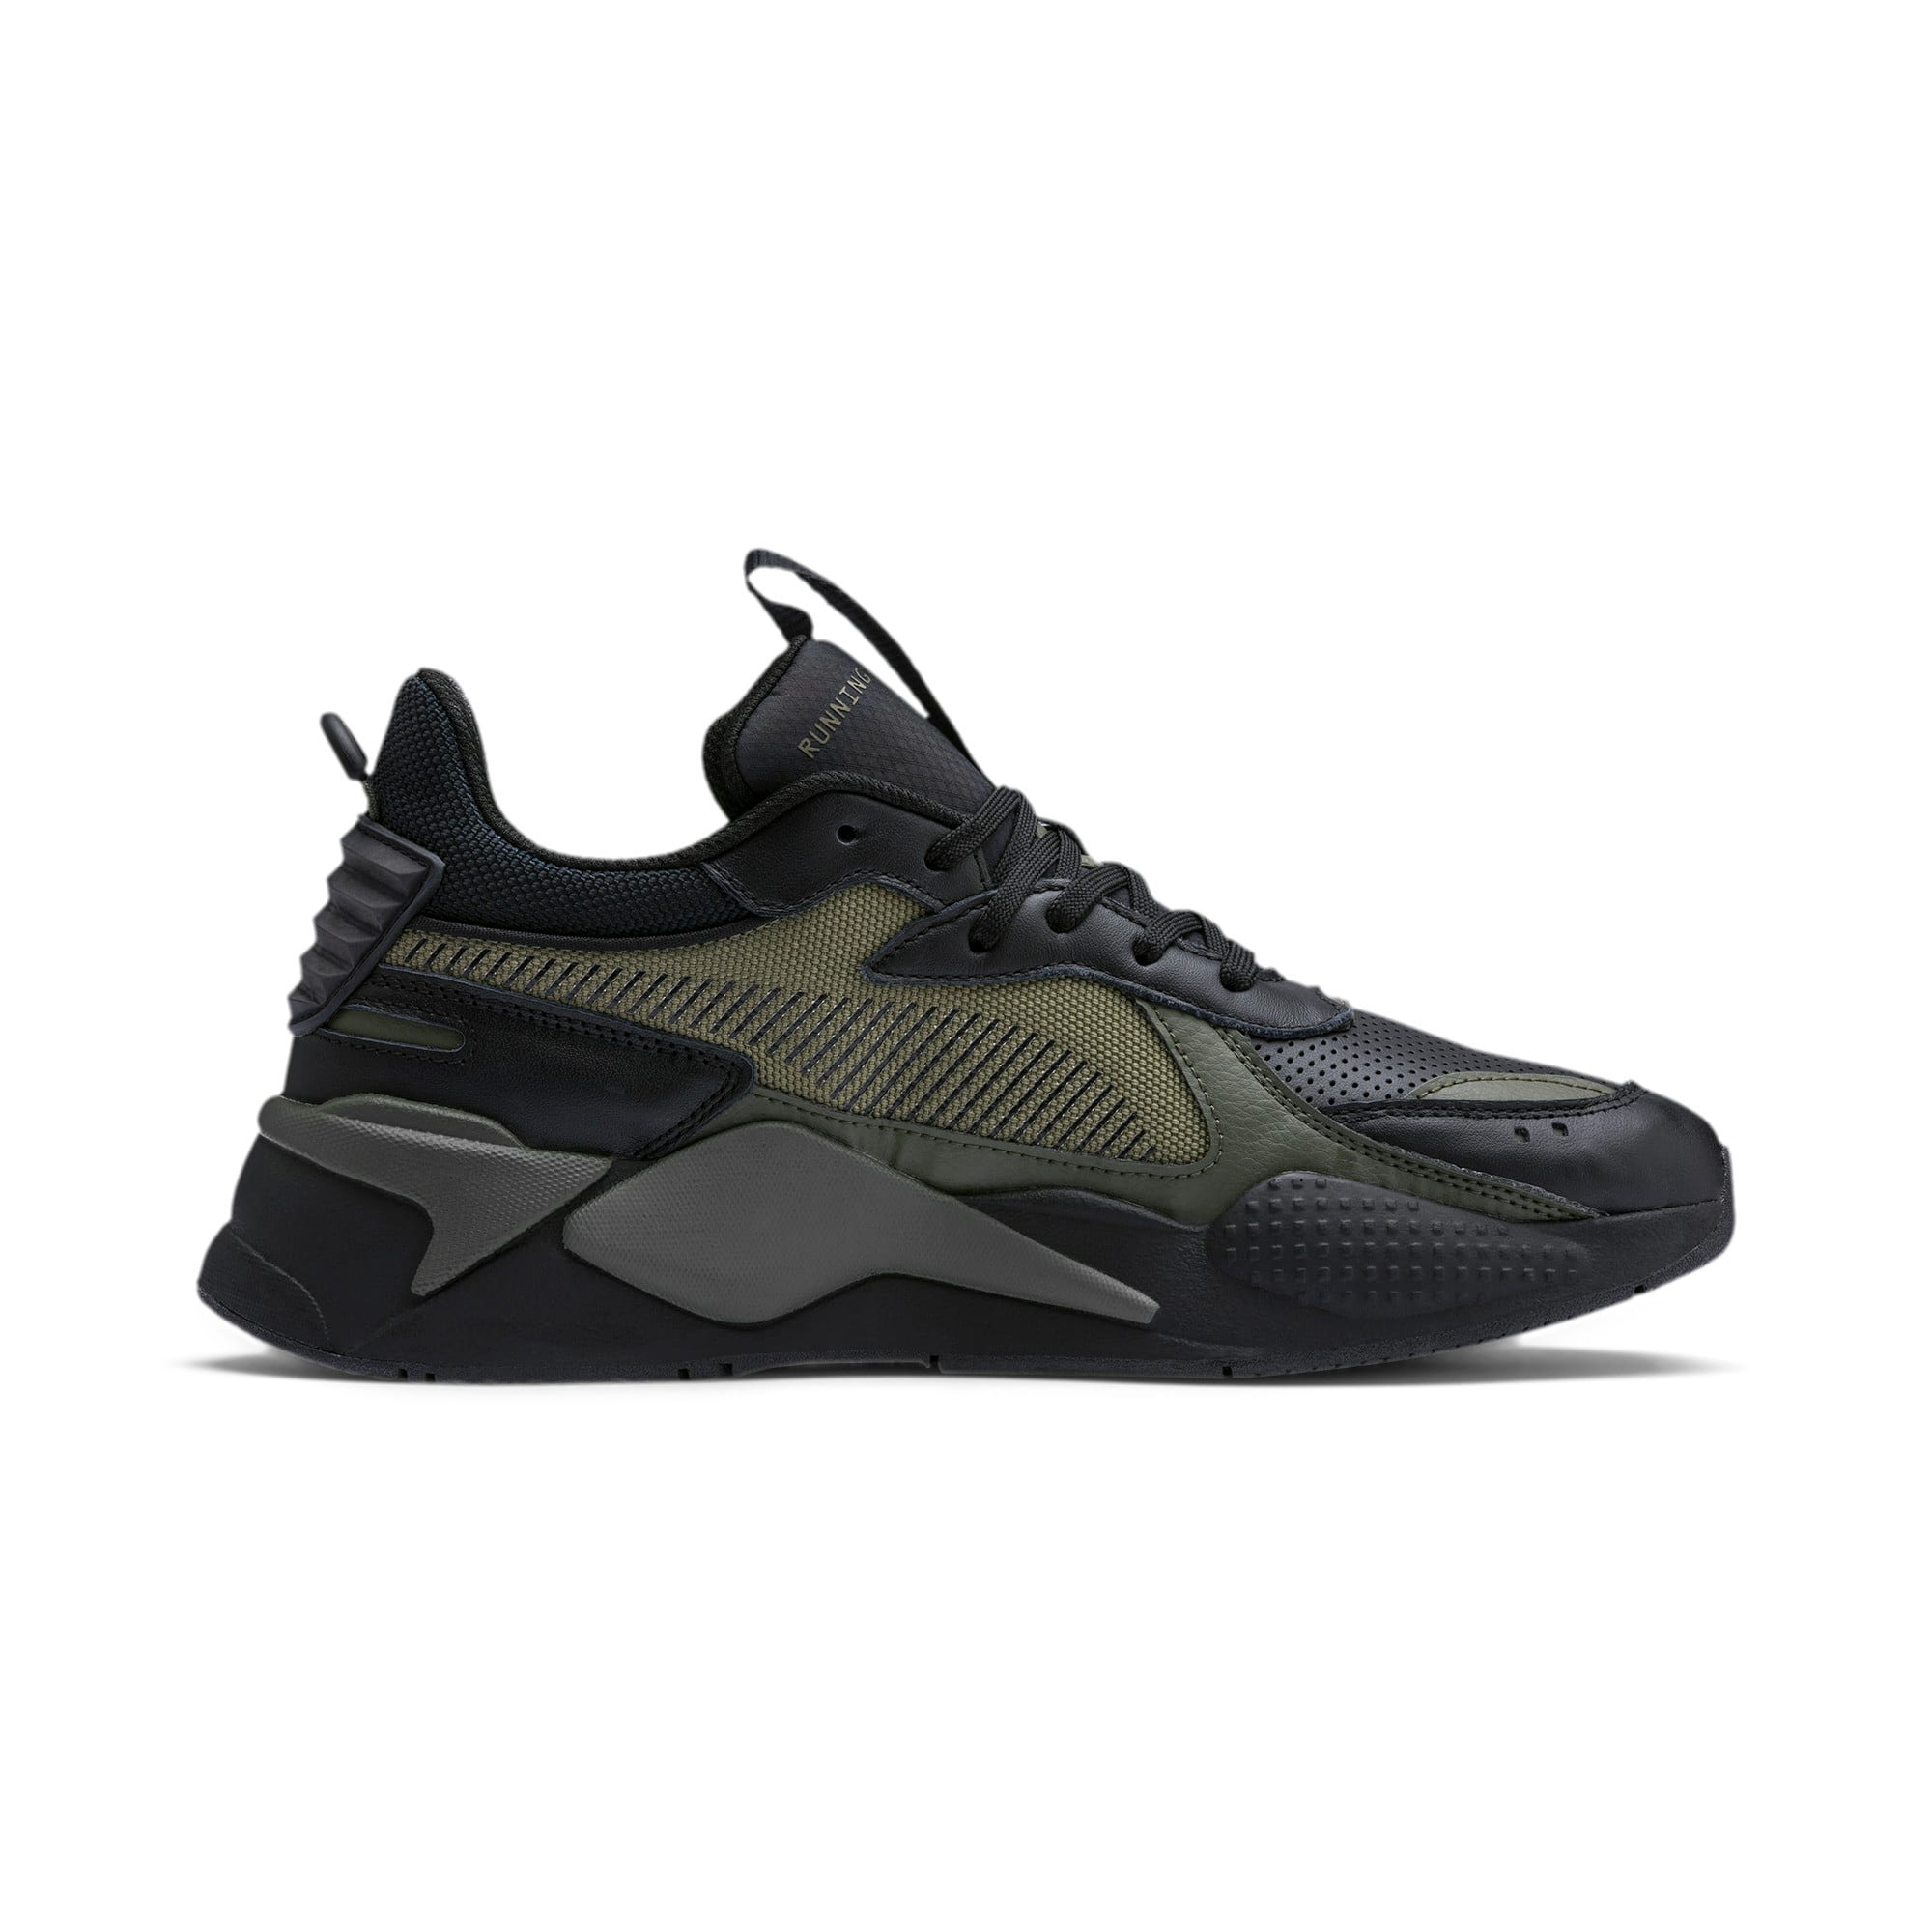 RS-X Winterized Sneakers, Puma Black-Burnt Olive, large